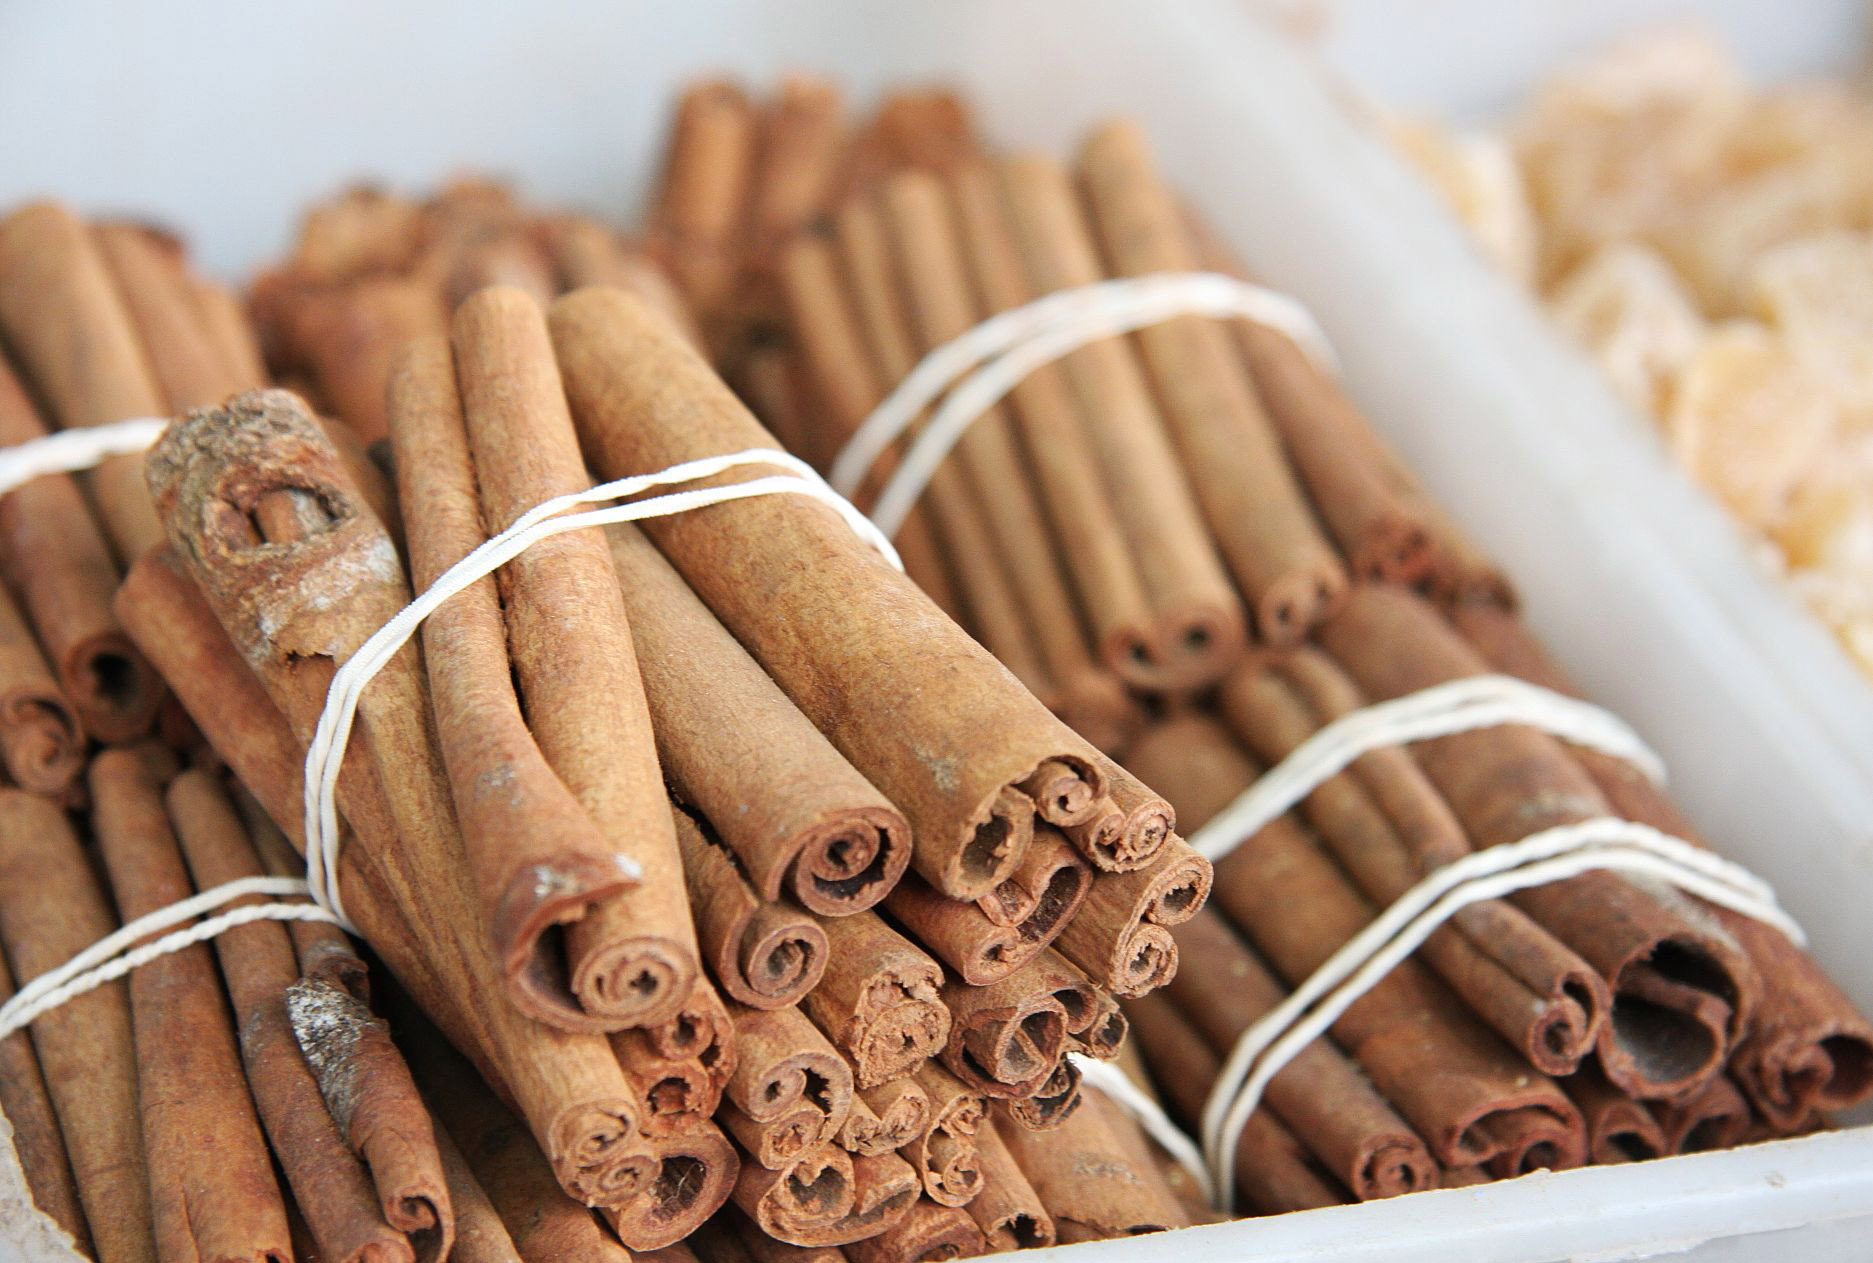 Is Cinnamon Placing You At Risk for Liver Damage?